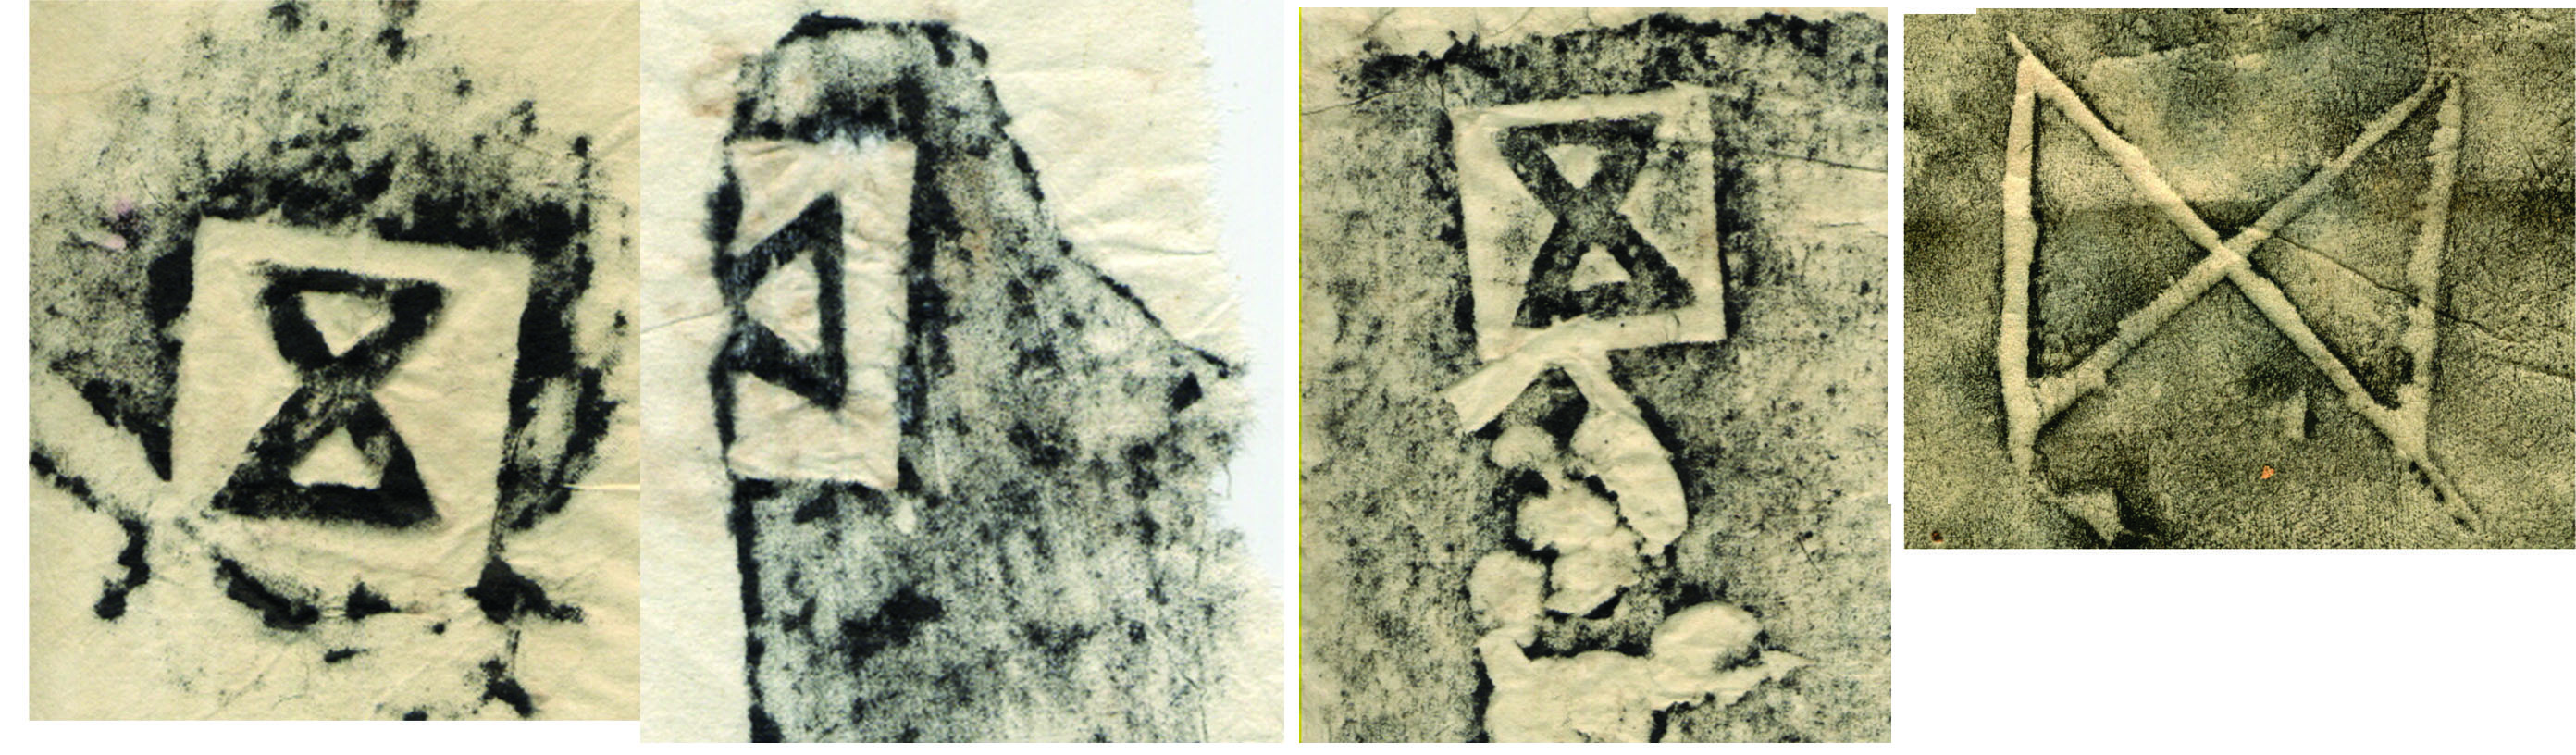 Signs and characters inscribed on the construction materials found in Phuong Nhi site (Nam Dinh province)